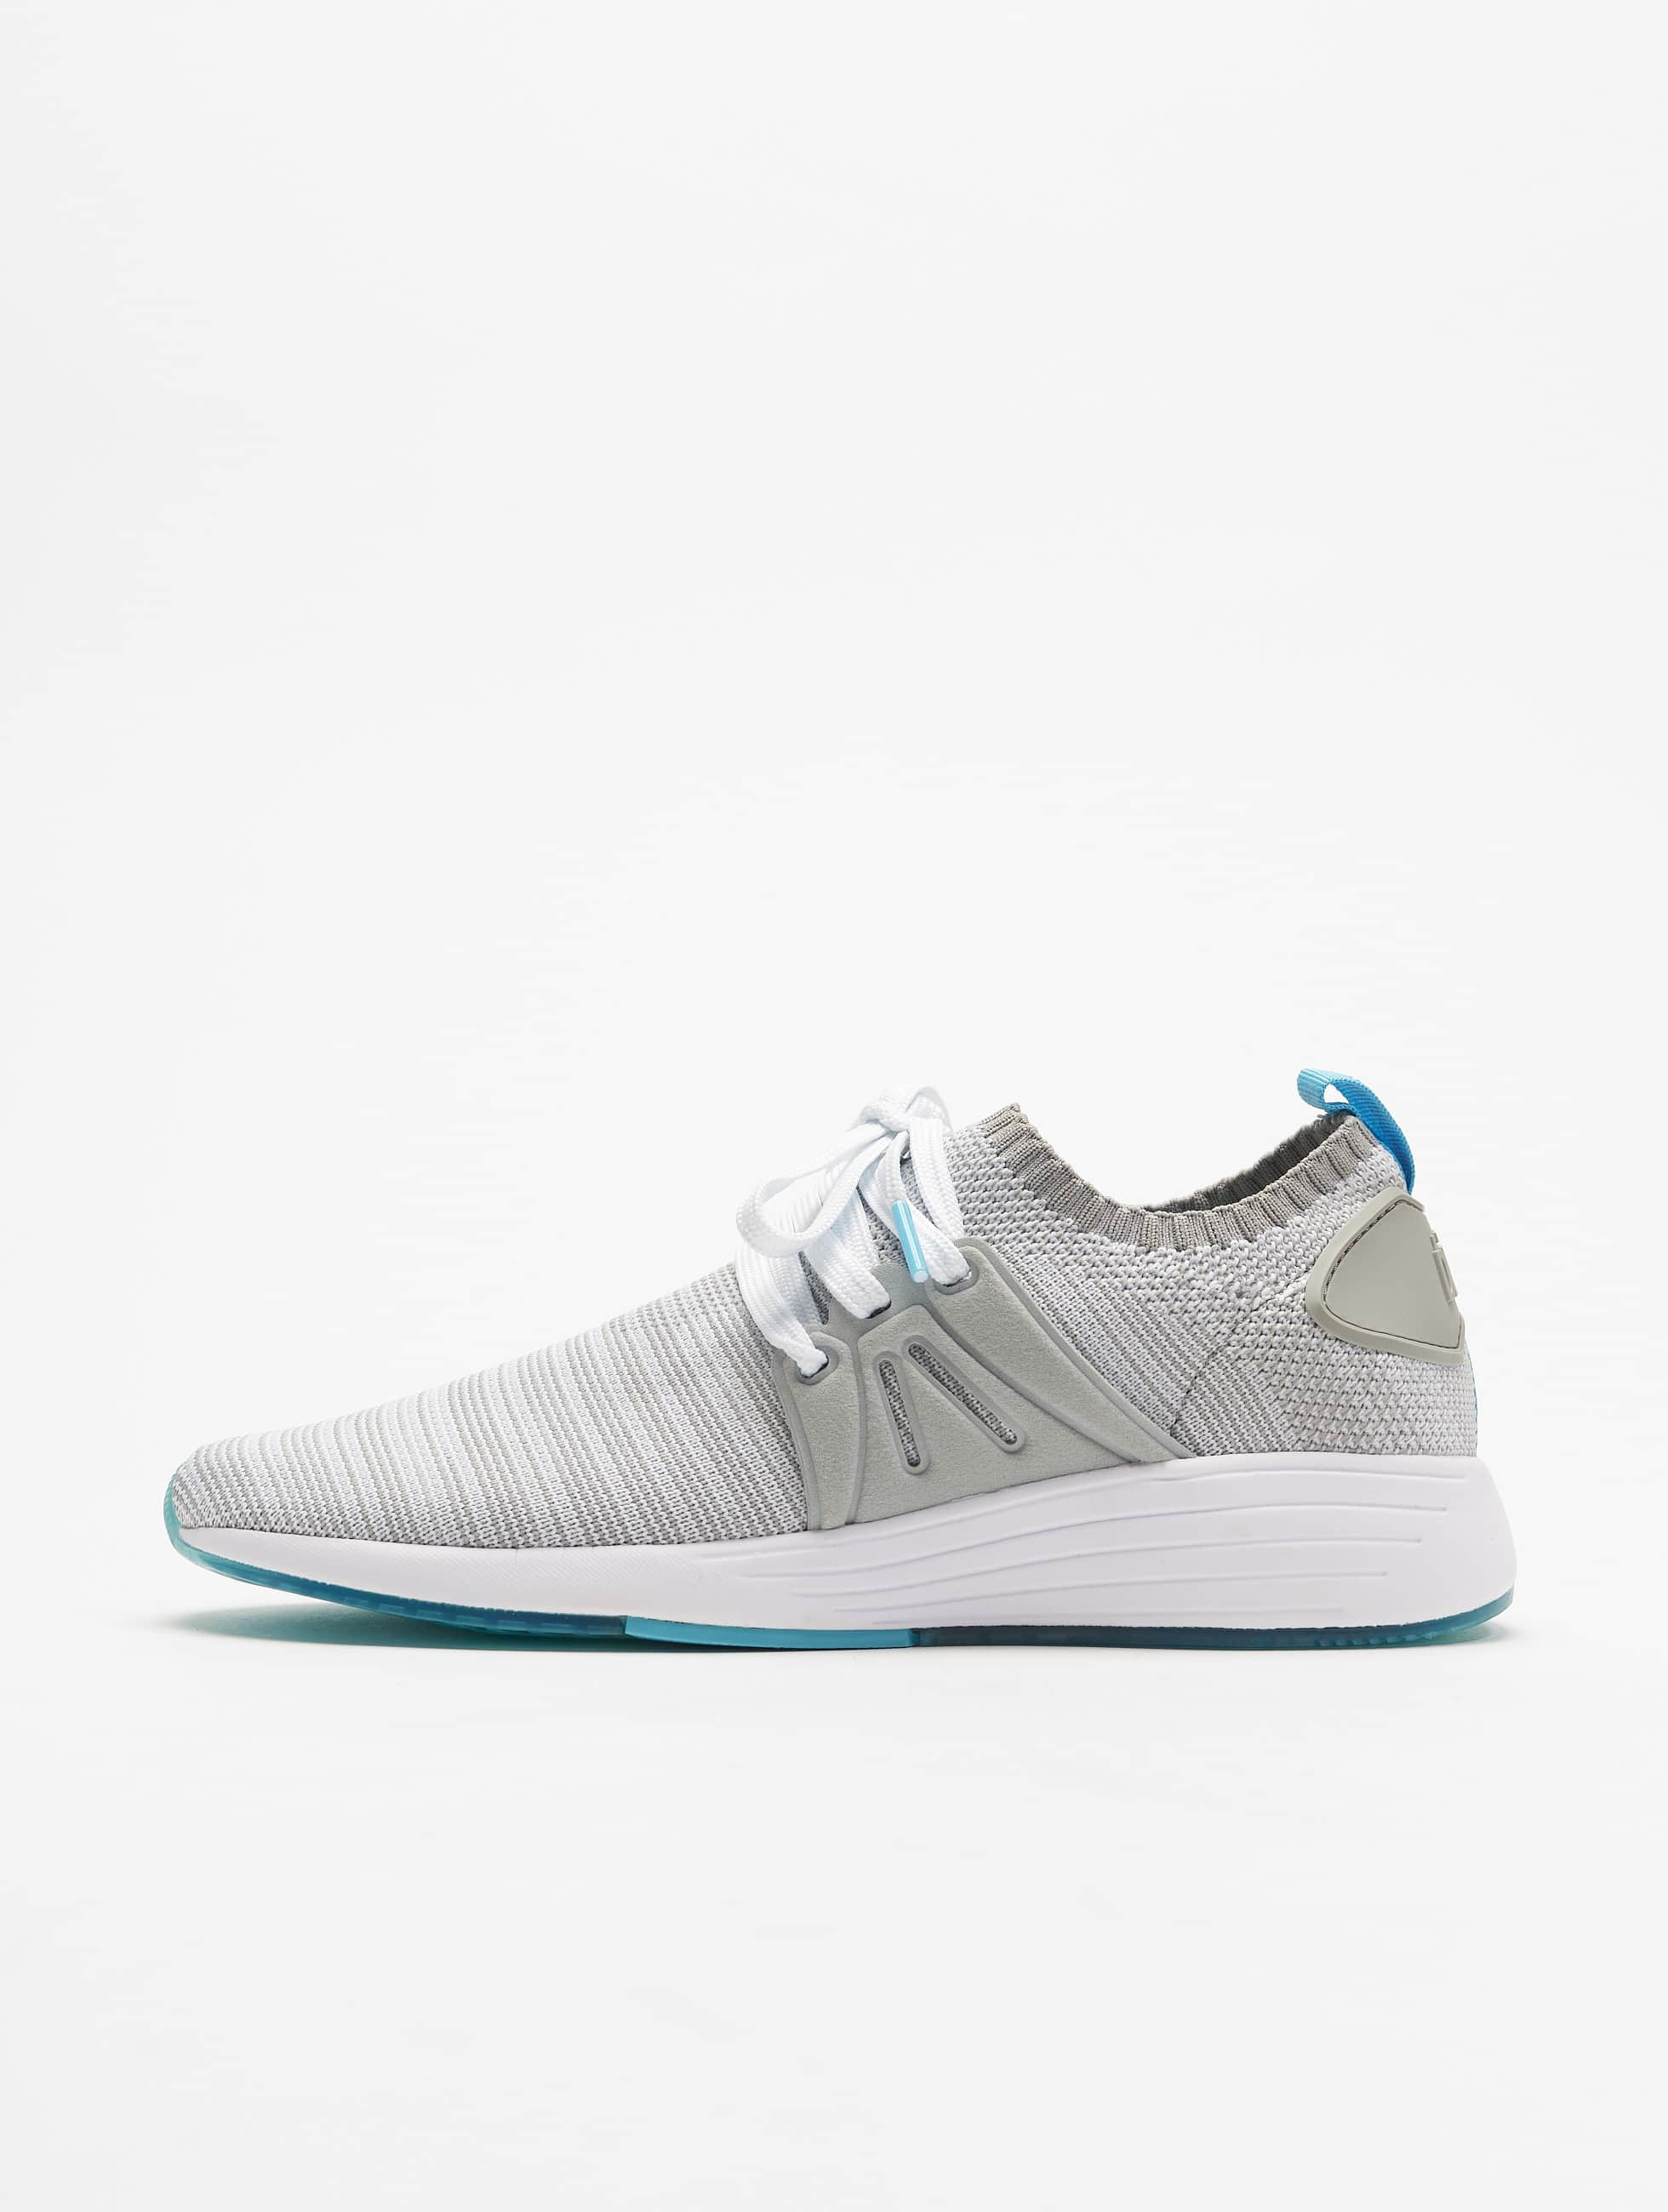 Project Delray Sneakers Project Delray Wavey grey